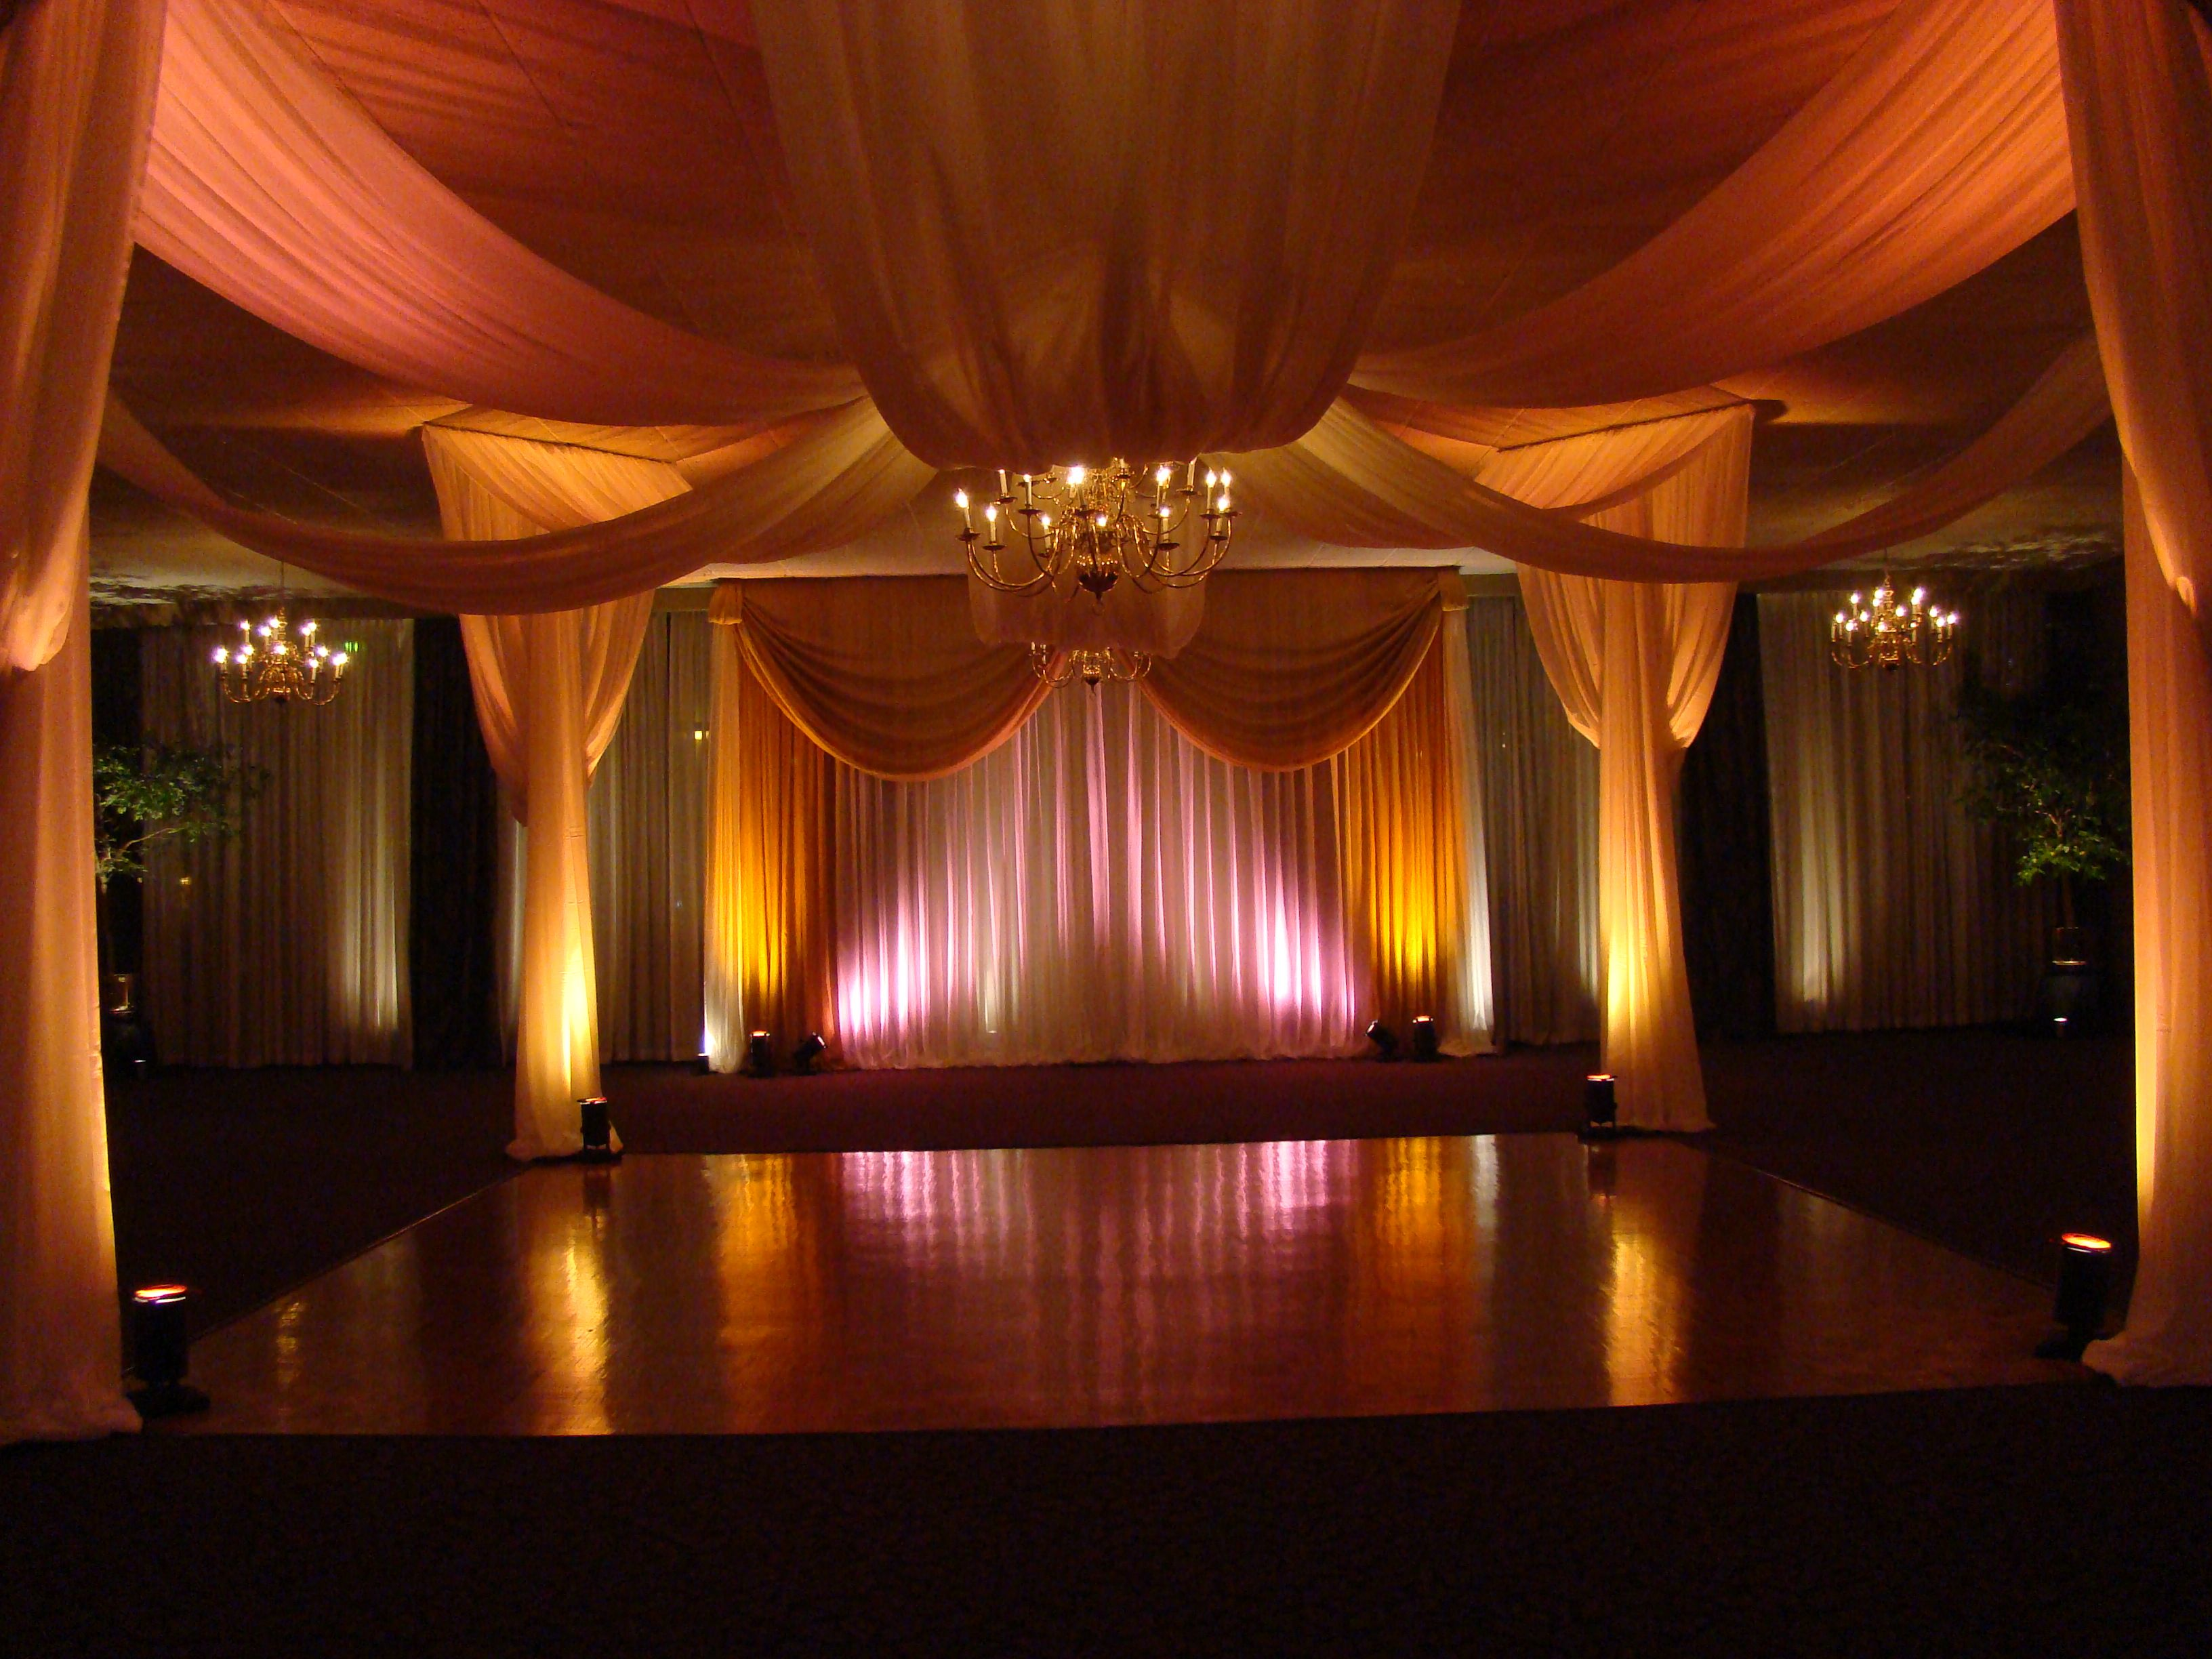 University Club Canopy Over The Dance Floor And Drapery Up Lights